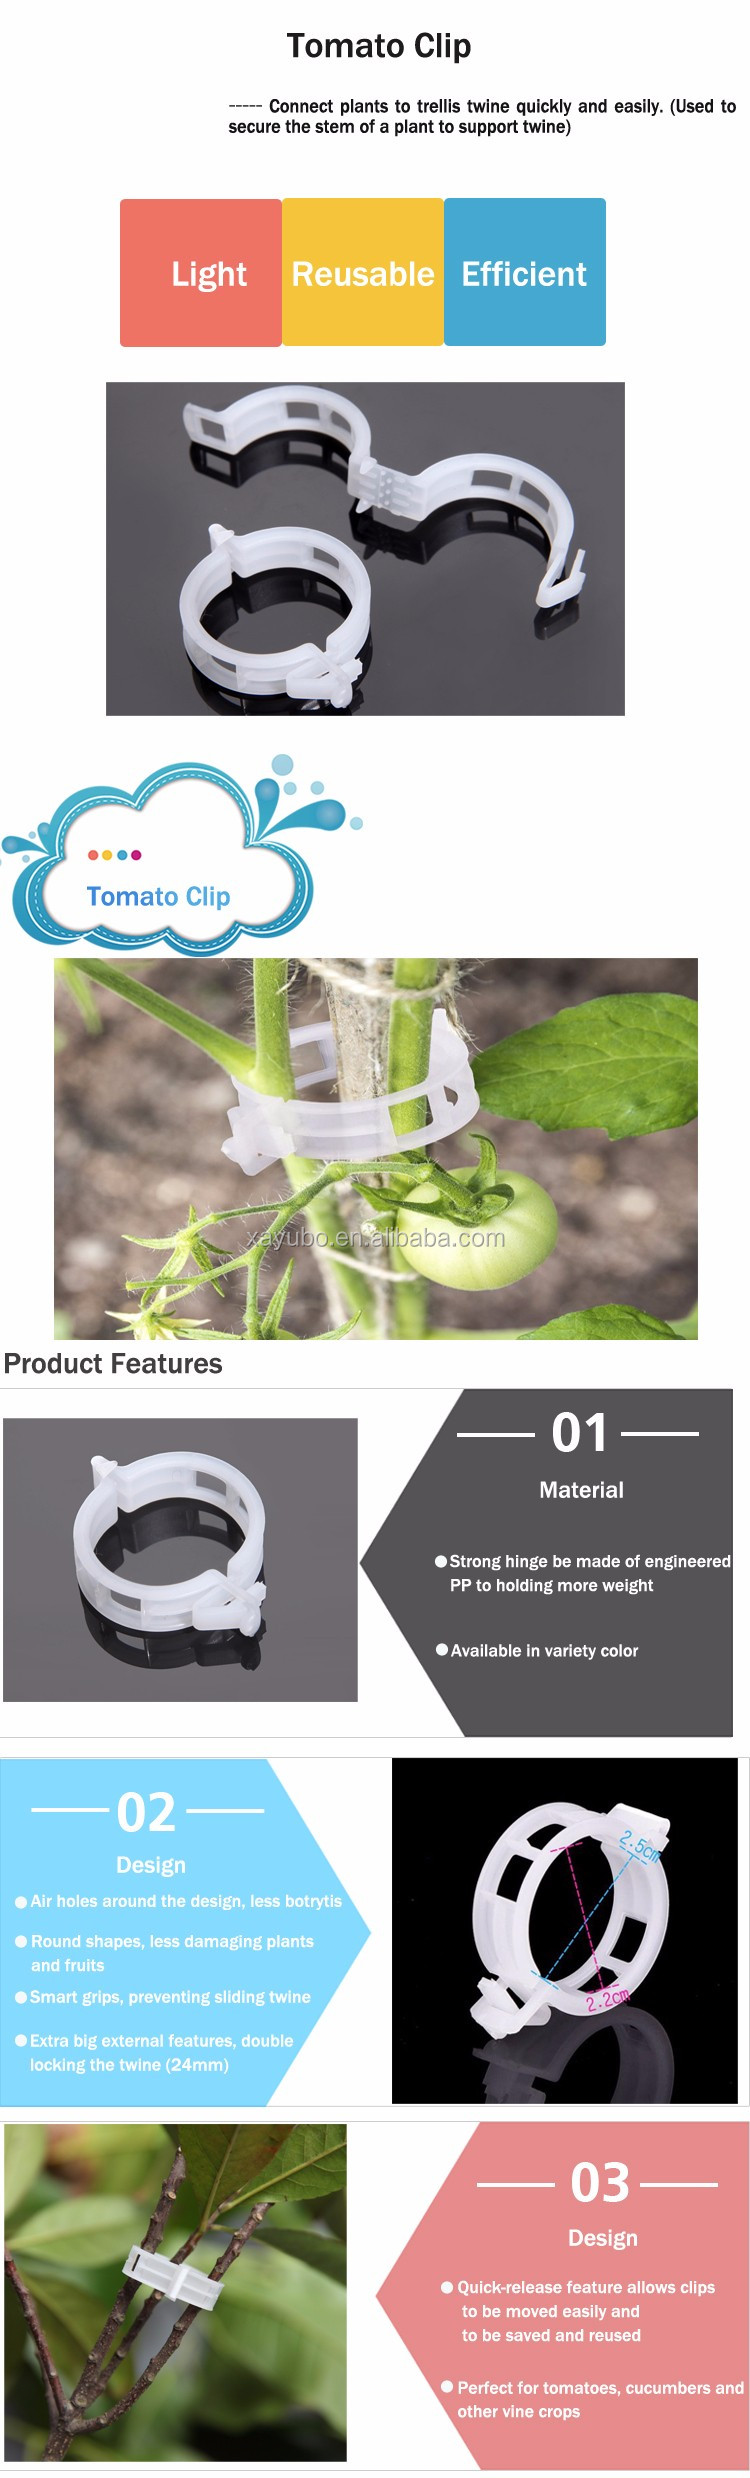 Wholesale Good Quality Cheap Reuse White Plastic Tomato Clips For Garden